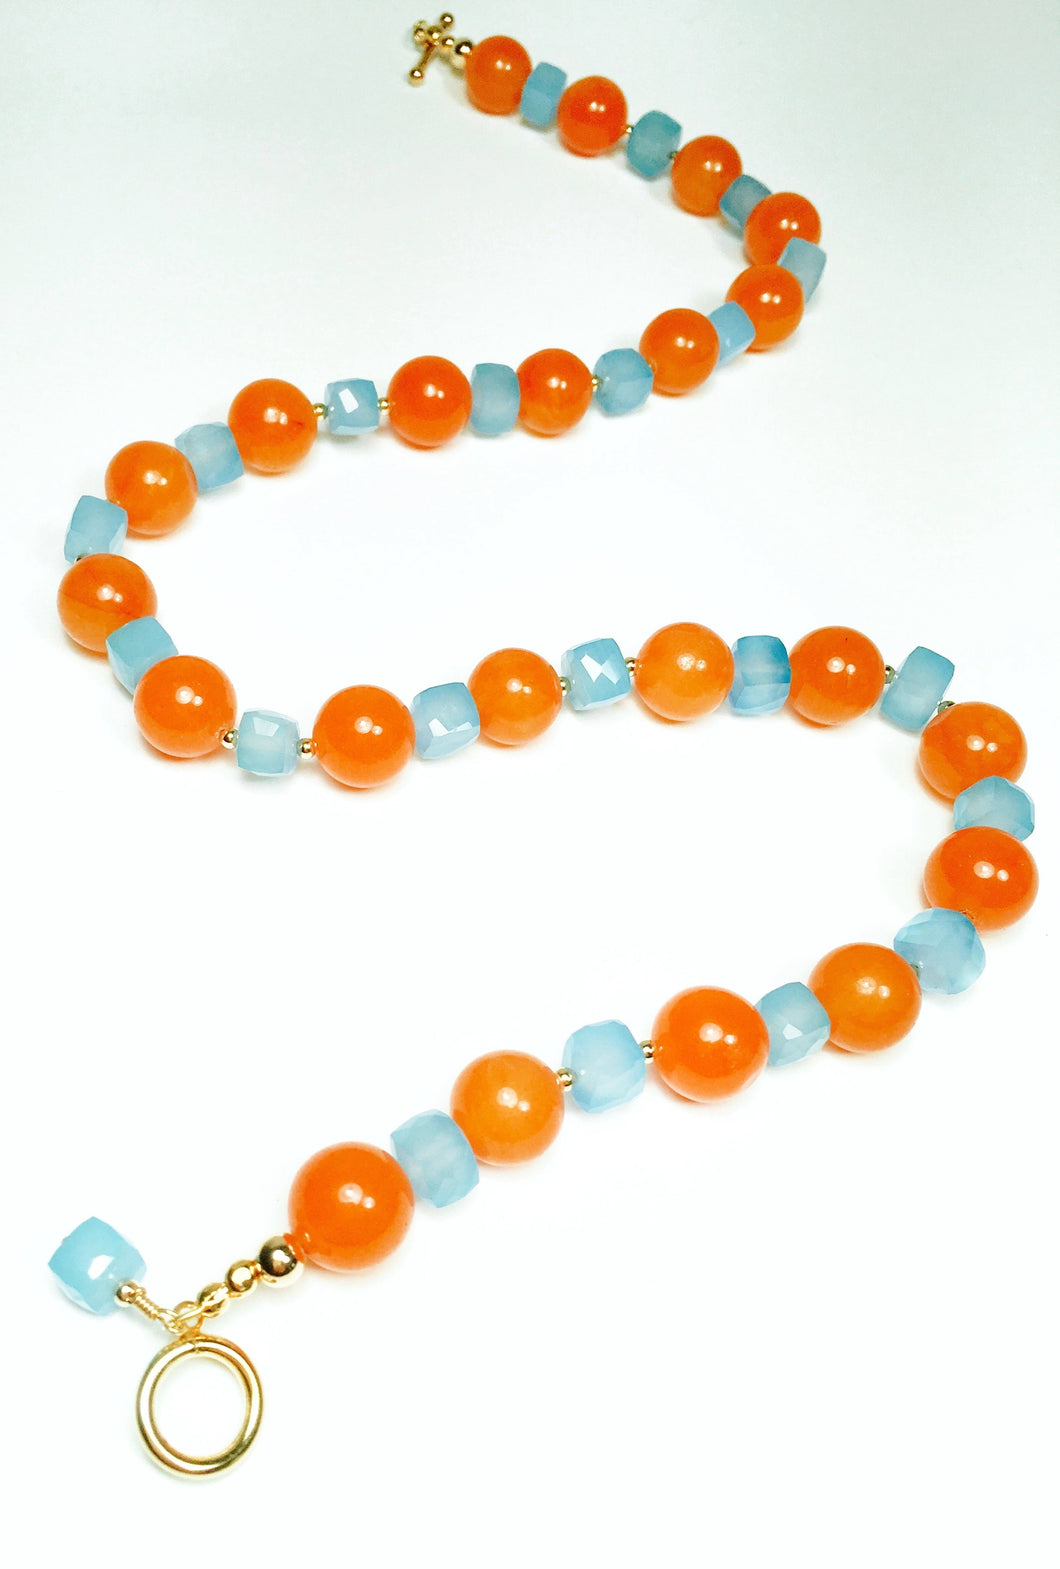 Robin's Egg Blue Chalcedony & Carnelian Necklace